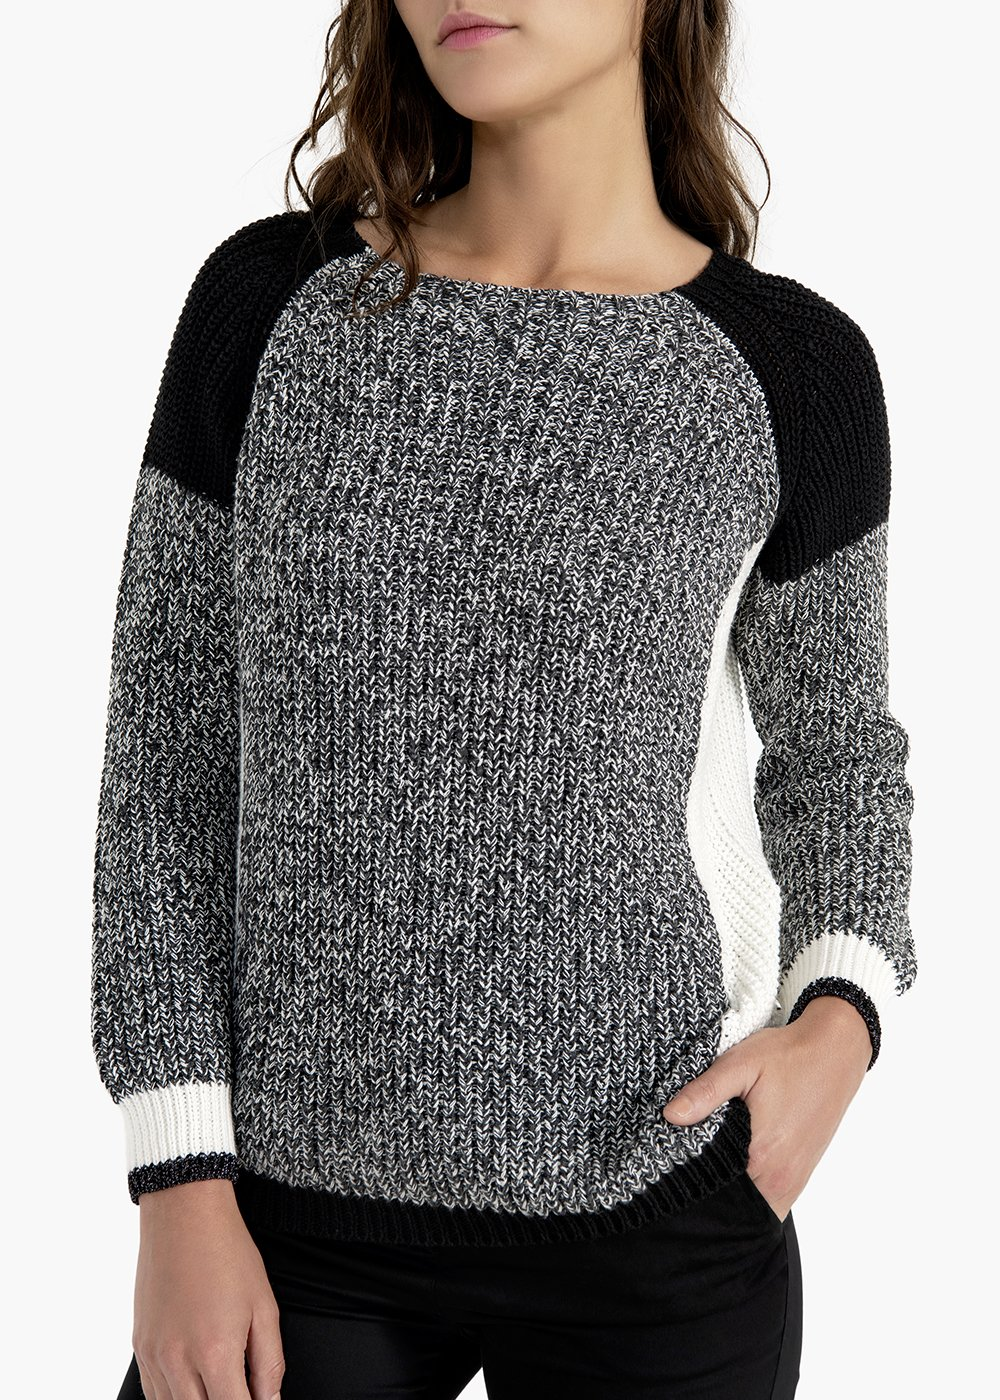 Marin sweater with salt and pepper effect and raglan sleeves - Black /  White - Woman